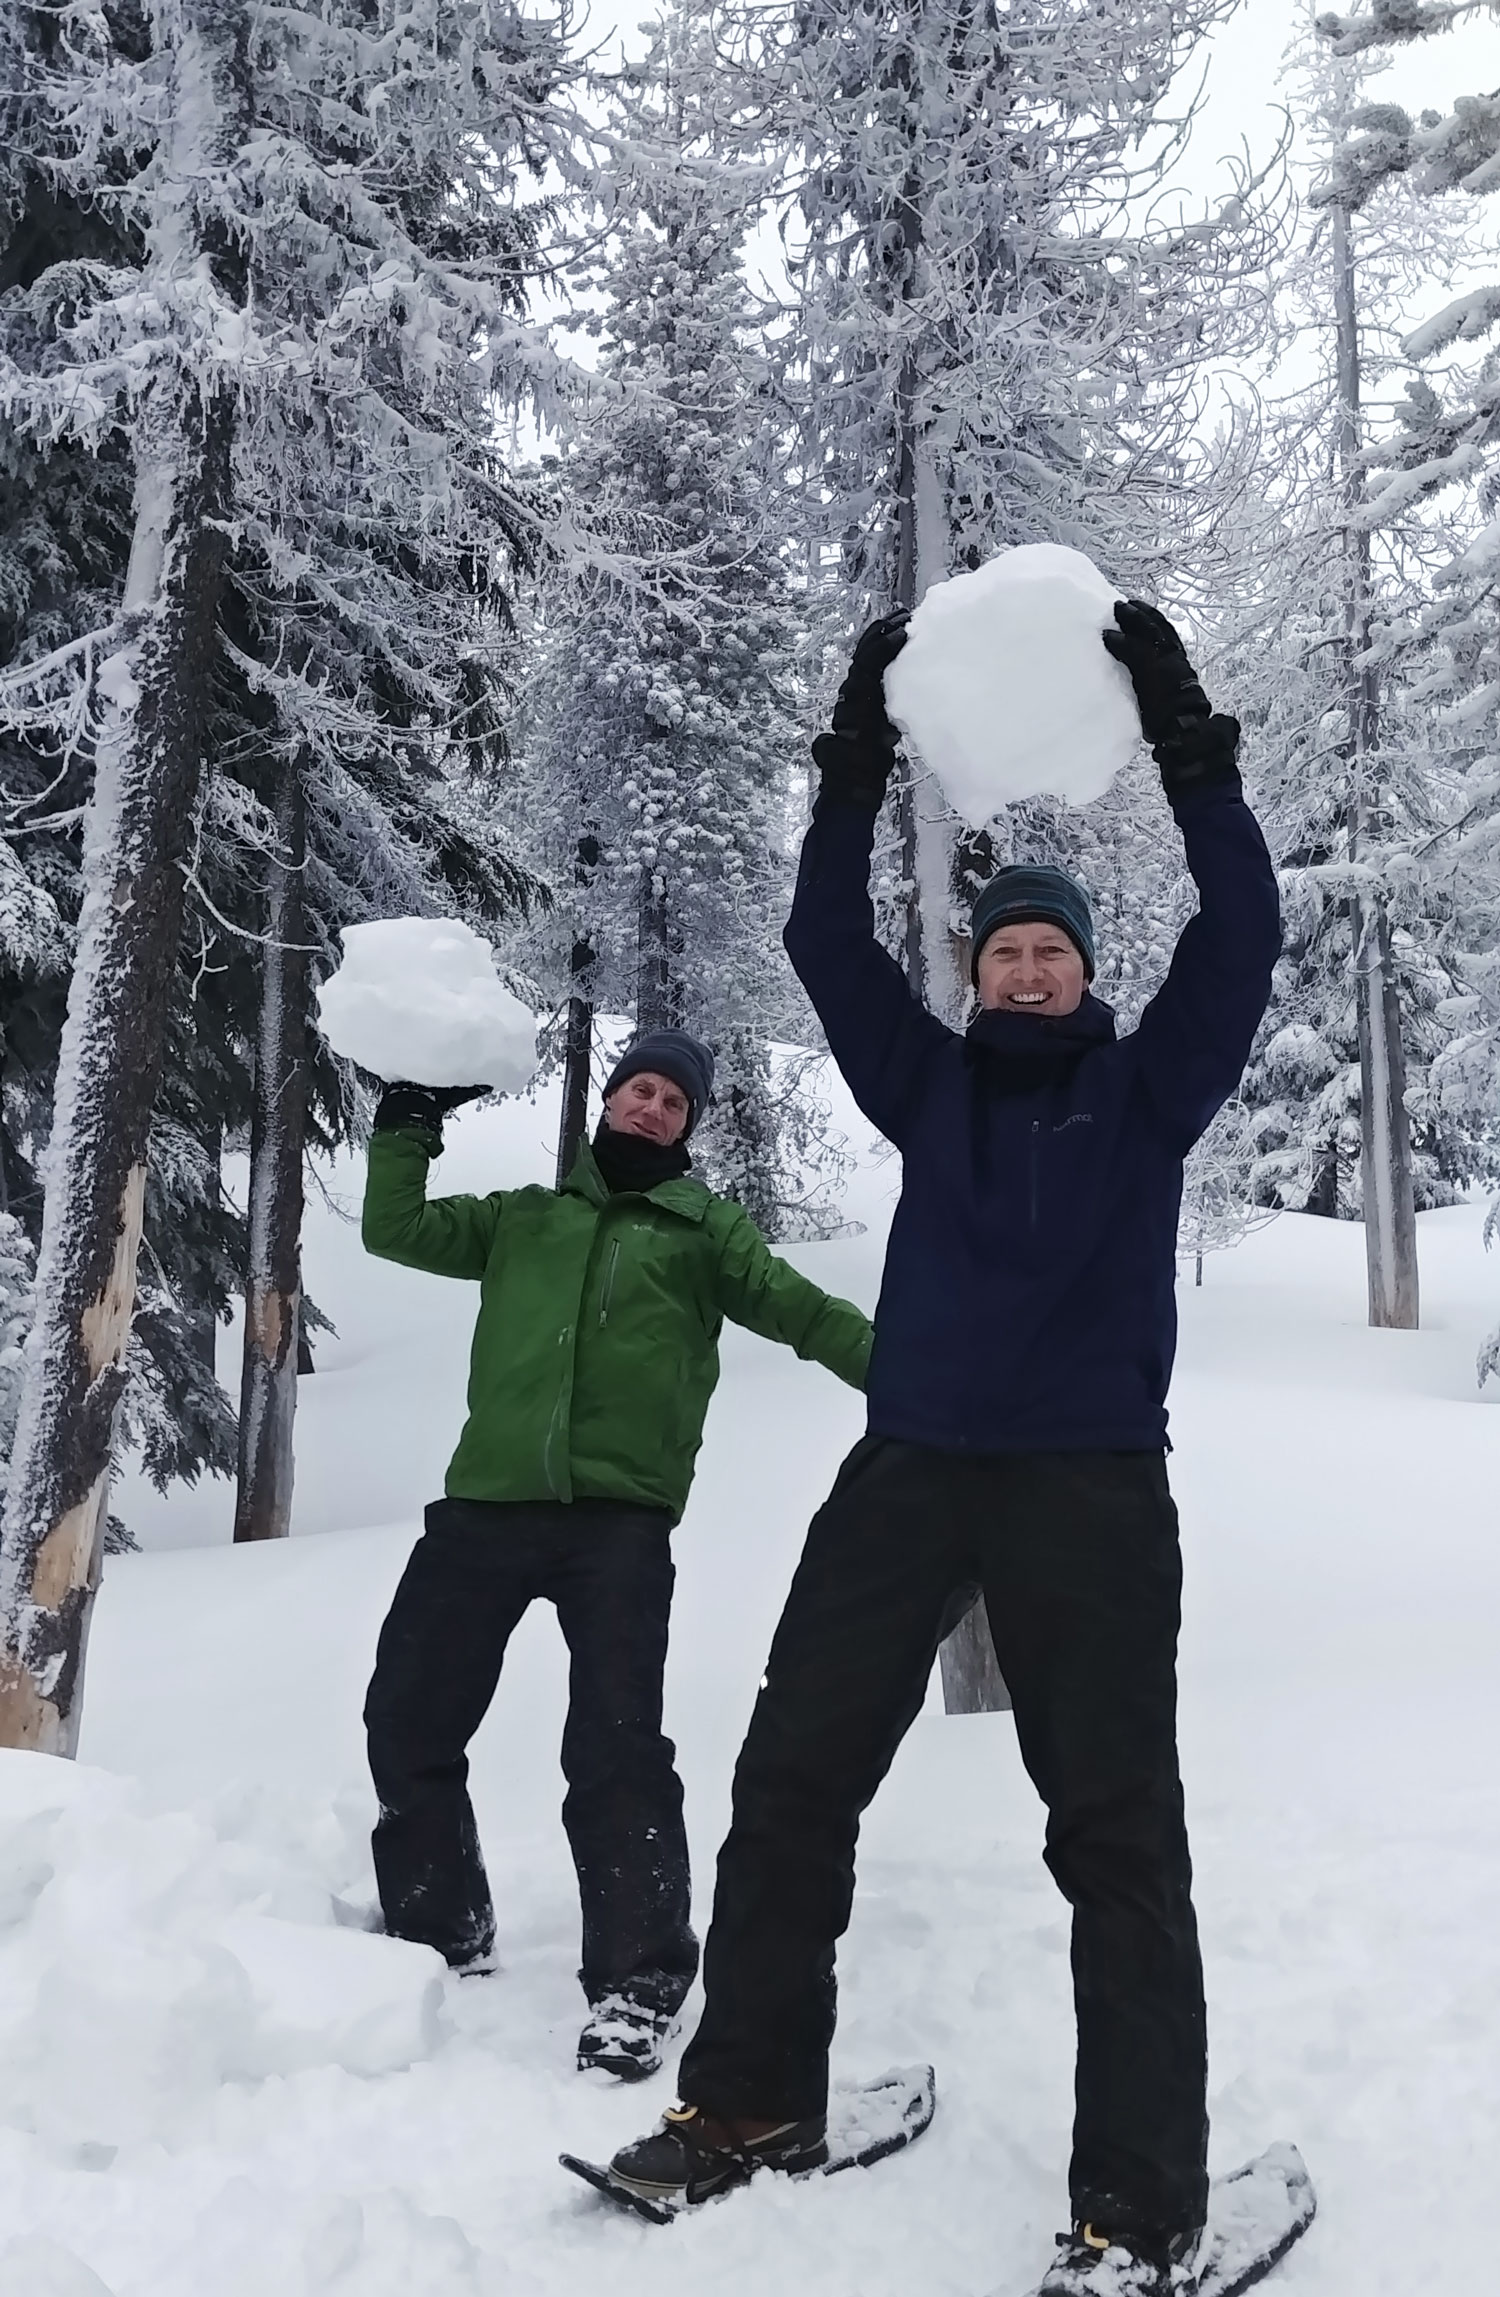 Making snowmen? Or the start of a giant snowball fight? I guess we'll never know.